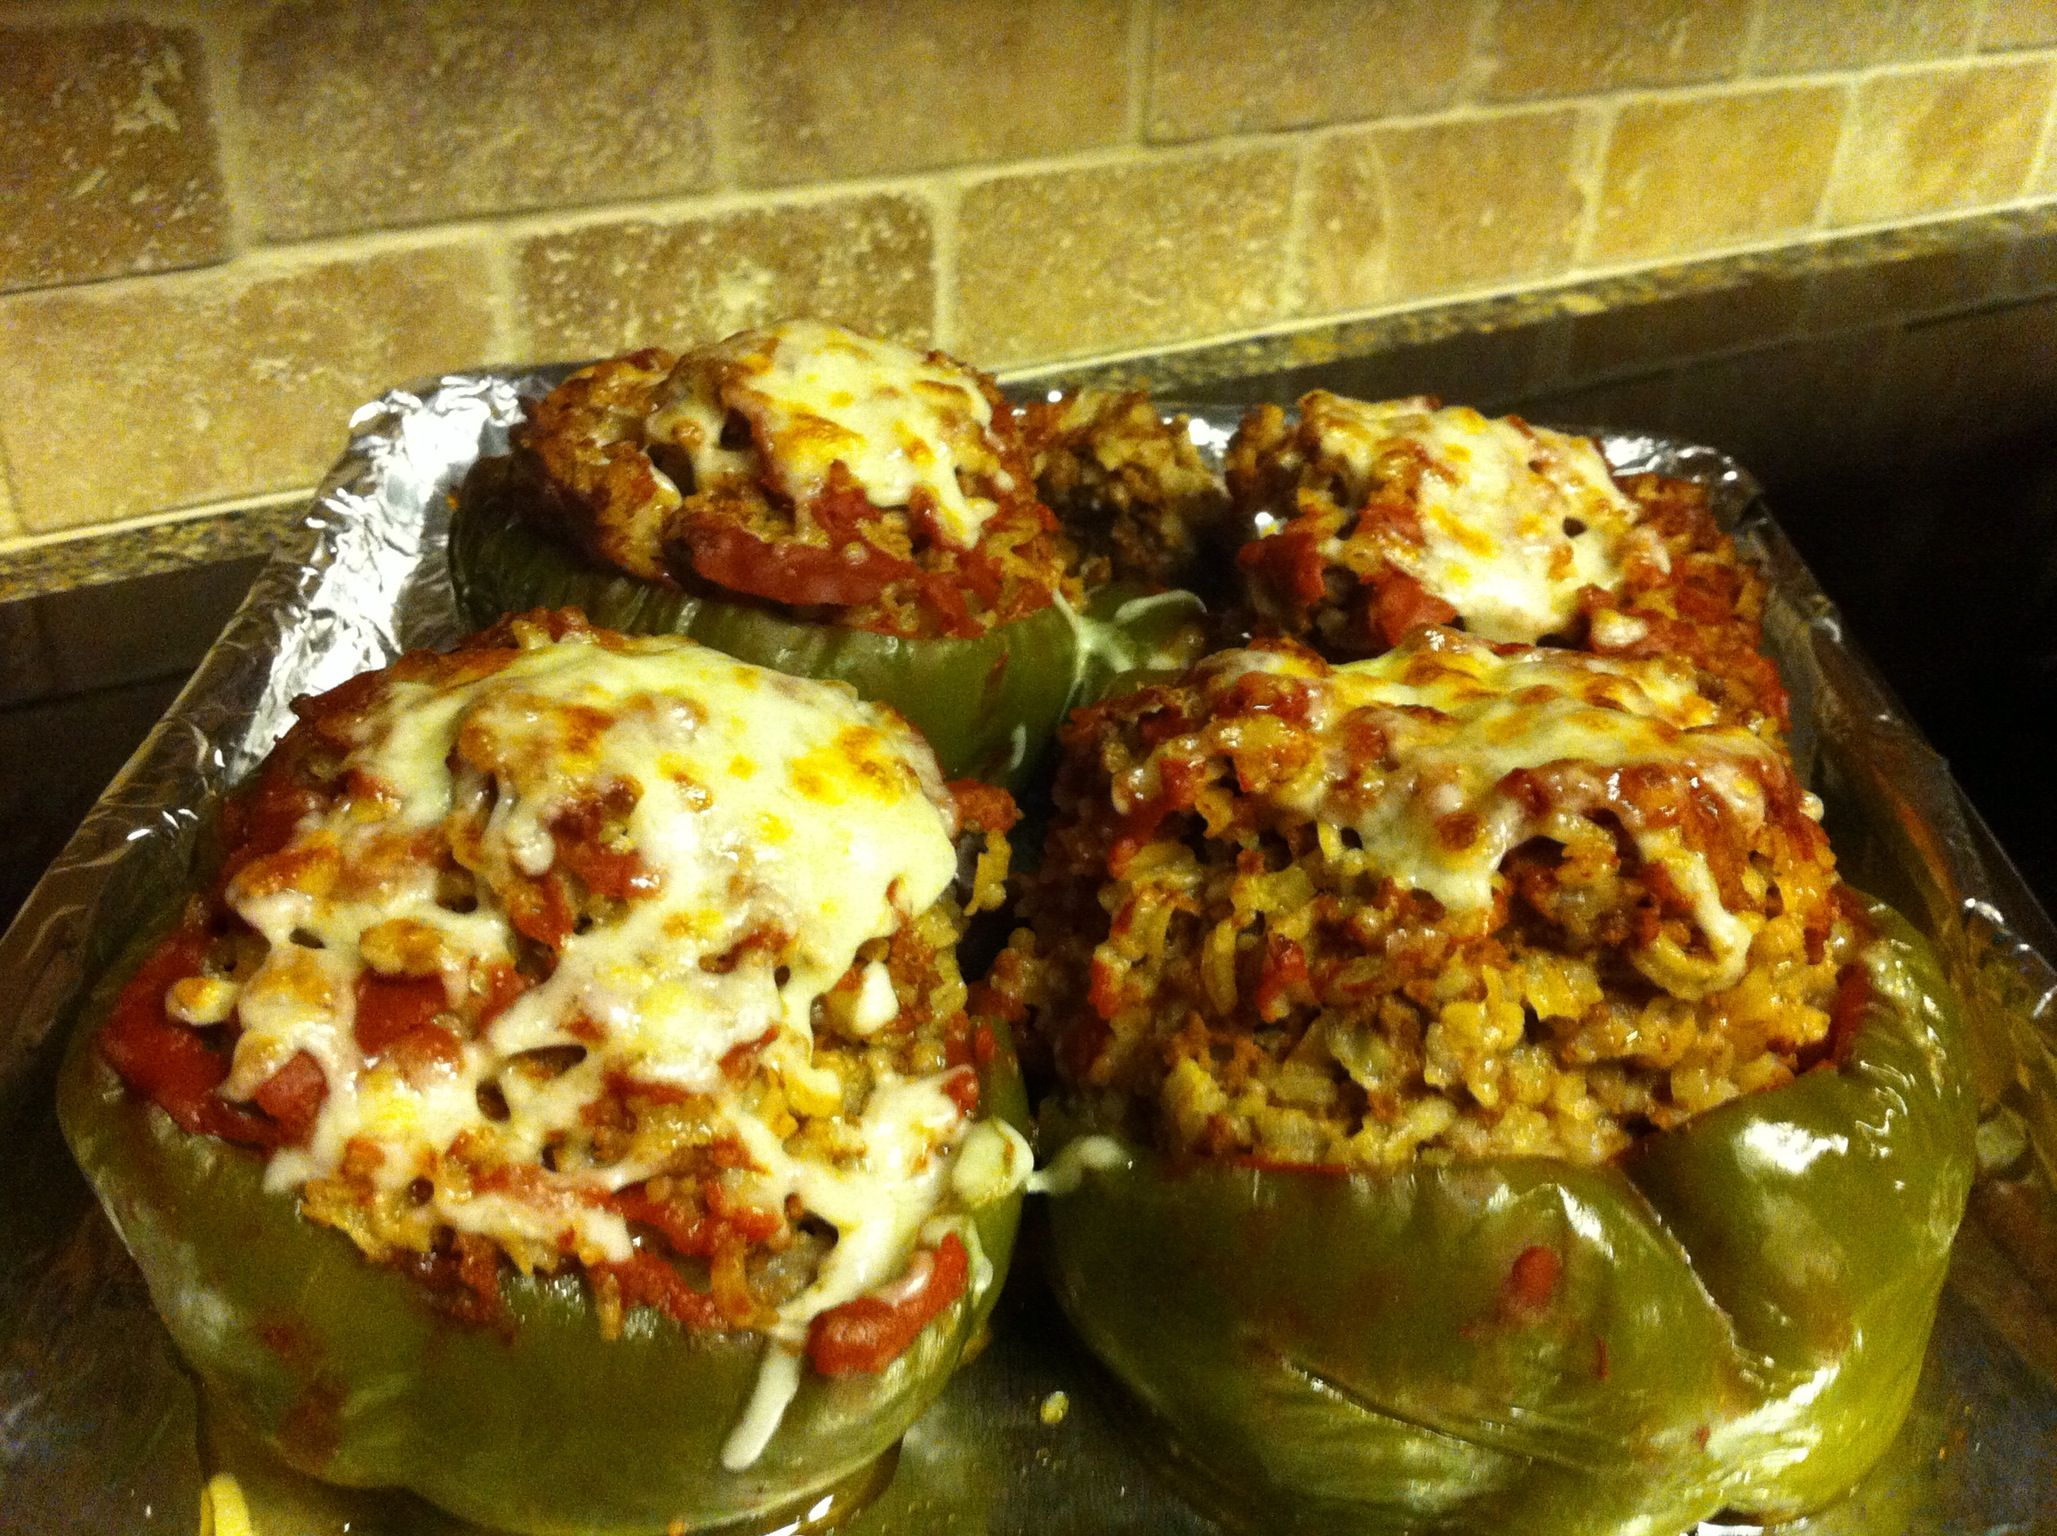 Stuffed Green Peppers Crock Pot Crockpot Stuffed Peppers Stuffed Peppers Food